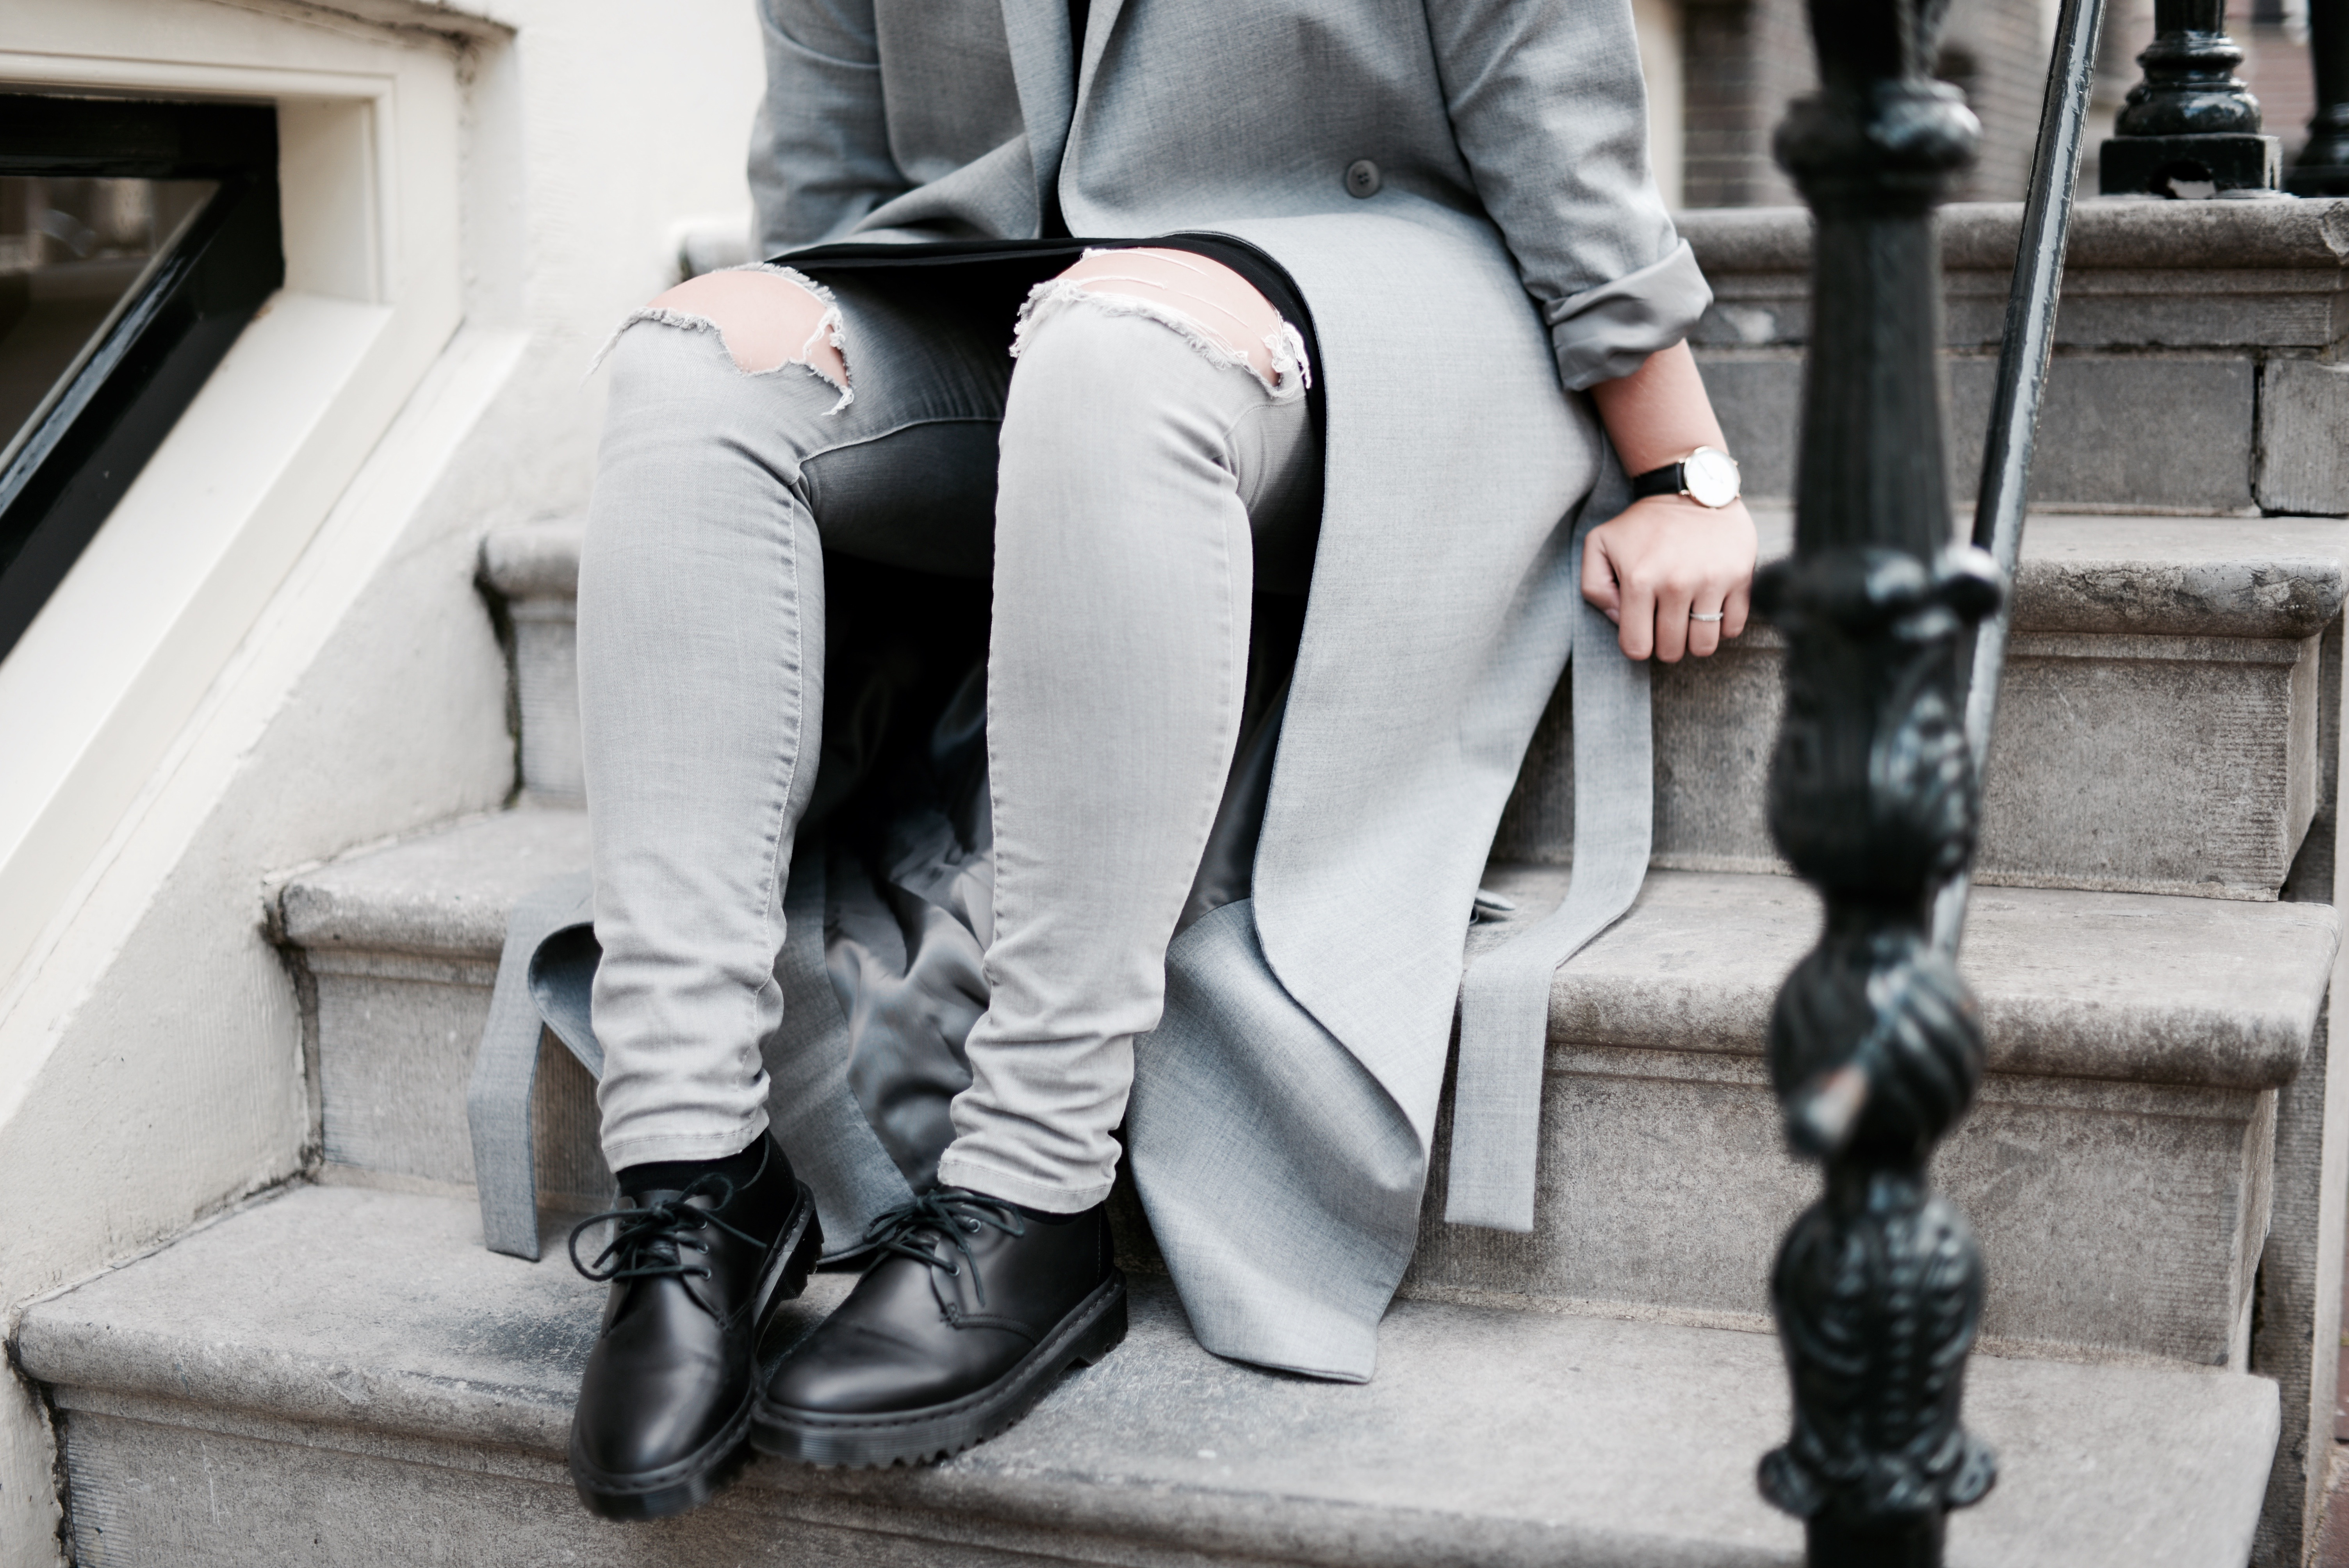 THAT GREY COAT